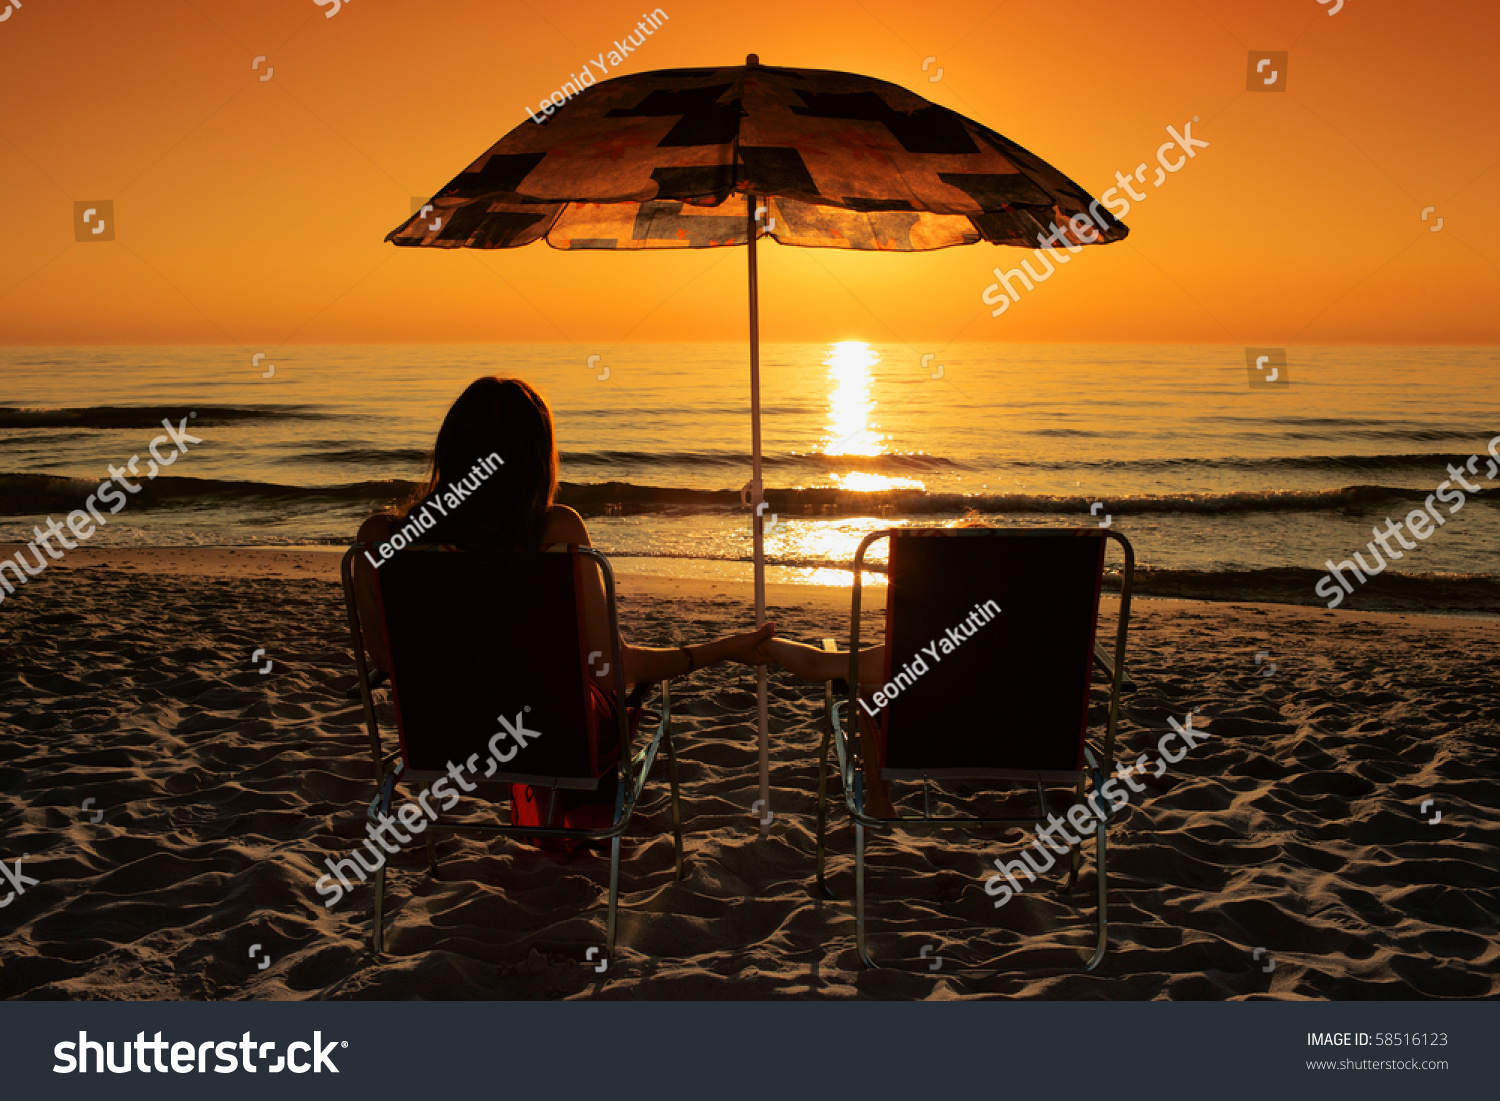 Beach sunset with chairs - Save To A Lightbox